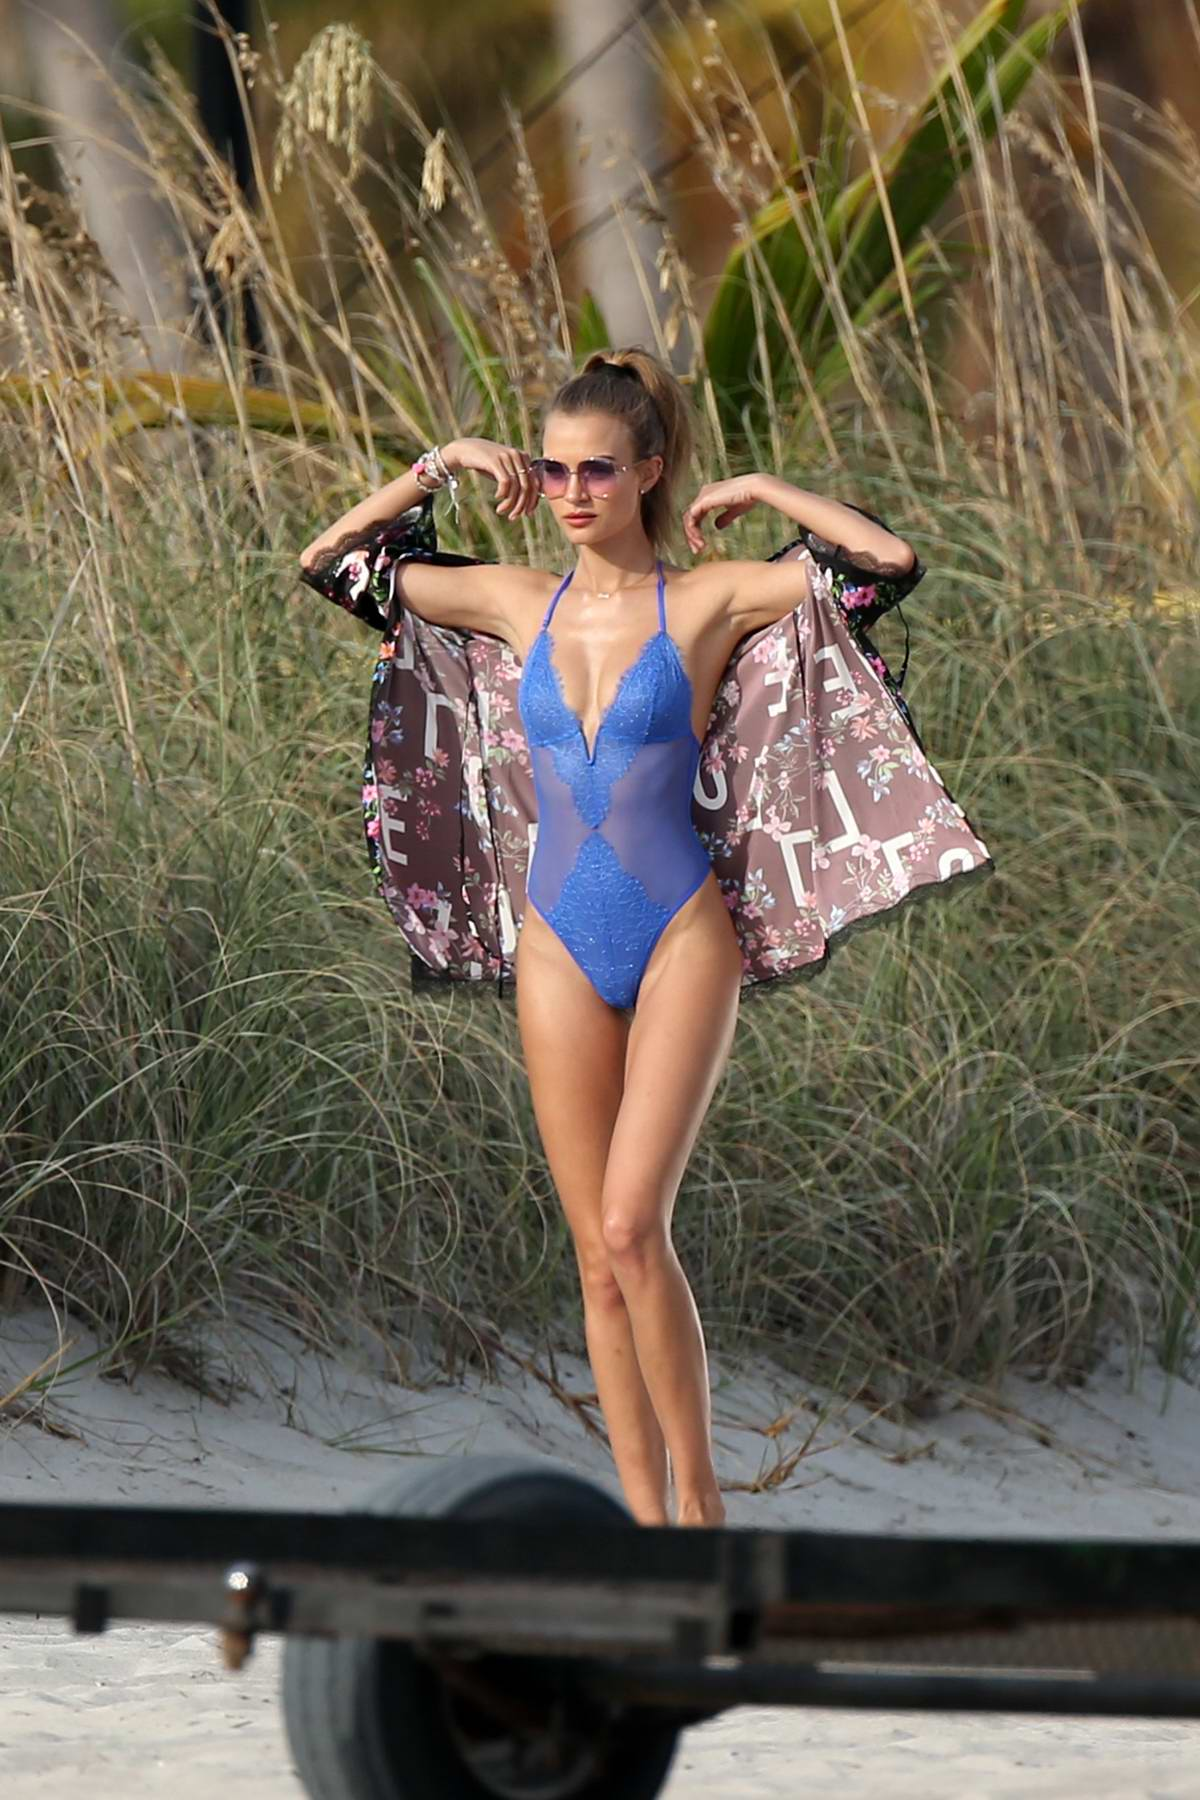 Josephine Skriver poses in a blue swimsuit as she during a Victoria's Secret photoshoot in Miami, Florida